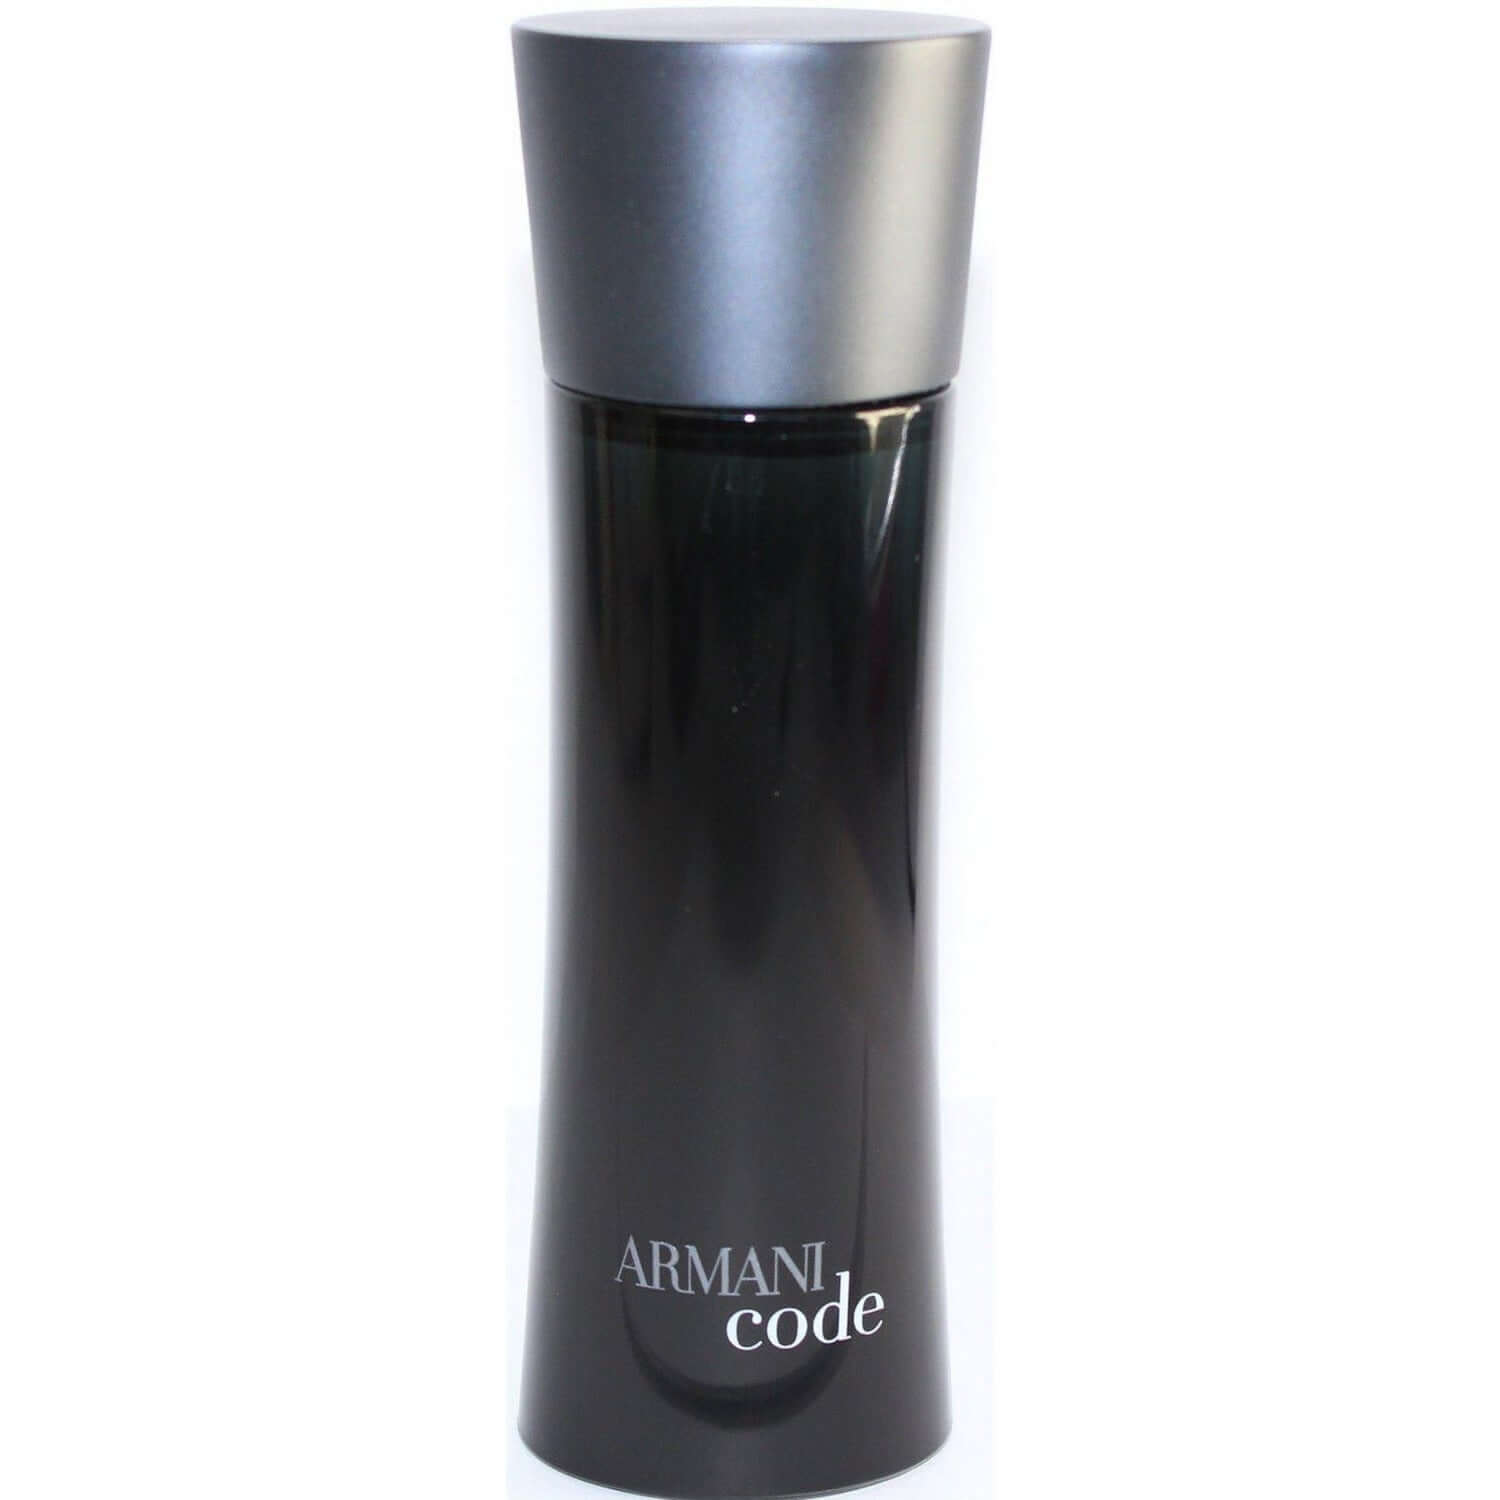 armani-code-giorgio-armani-2-5-oz-edt-cologne-men-new-spray